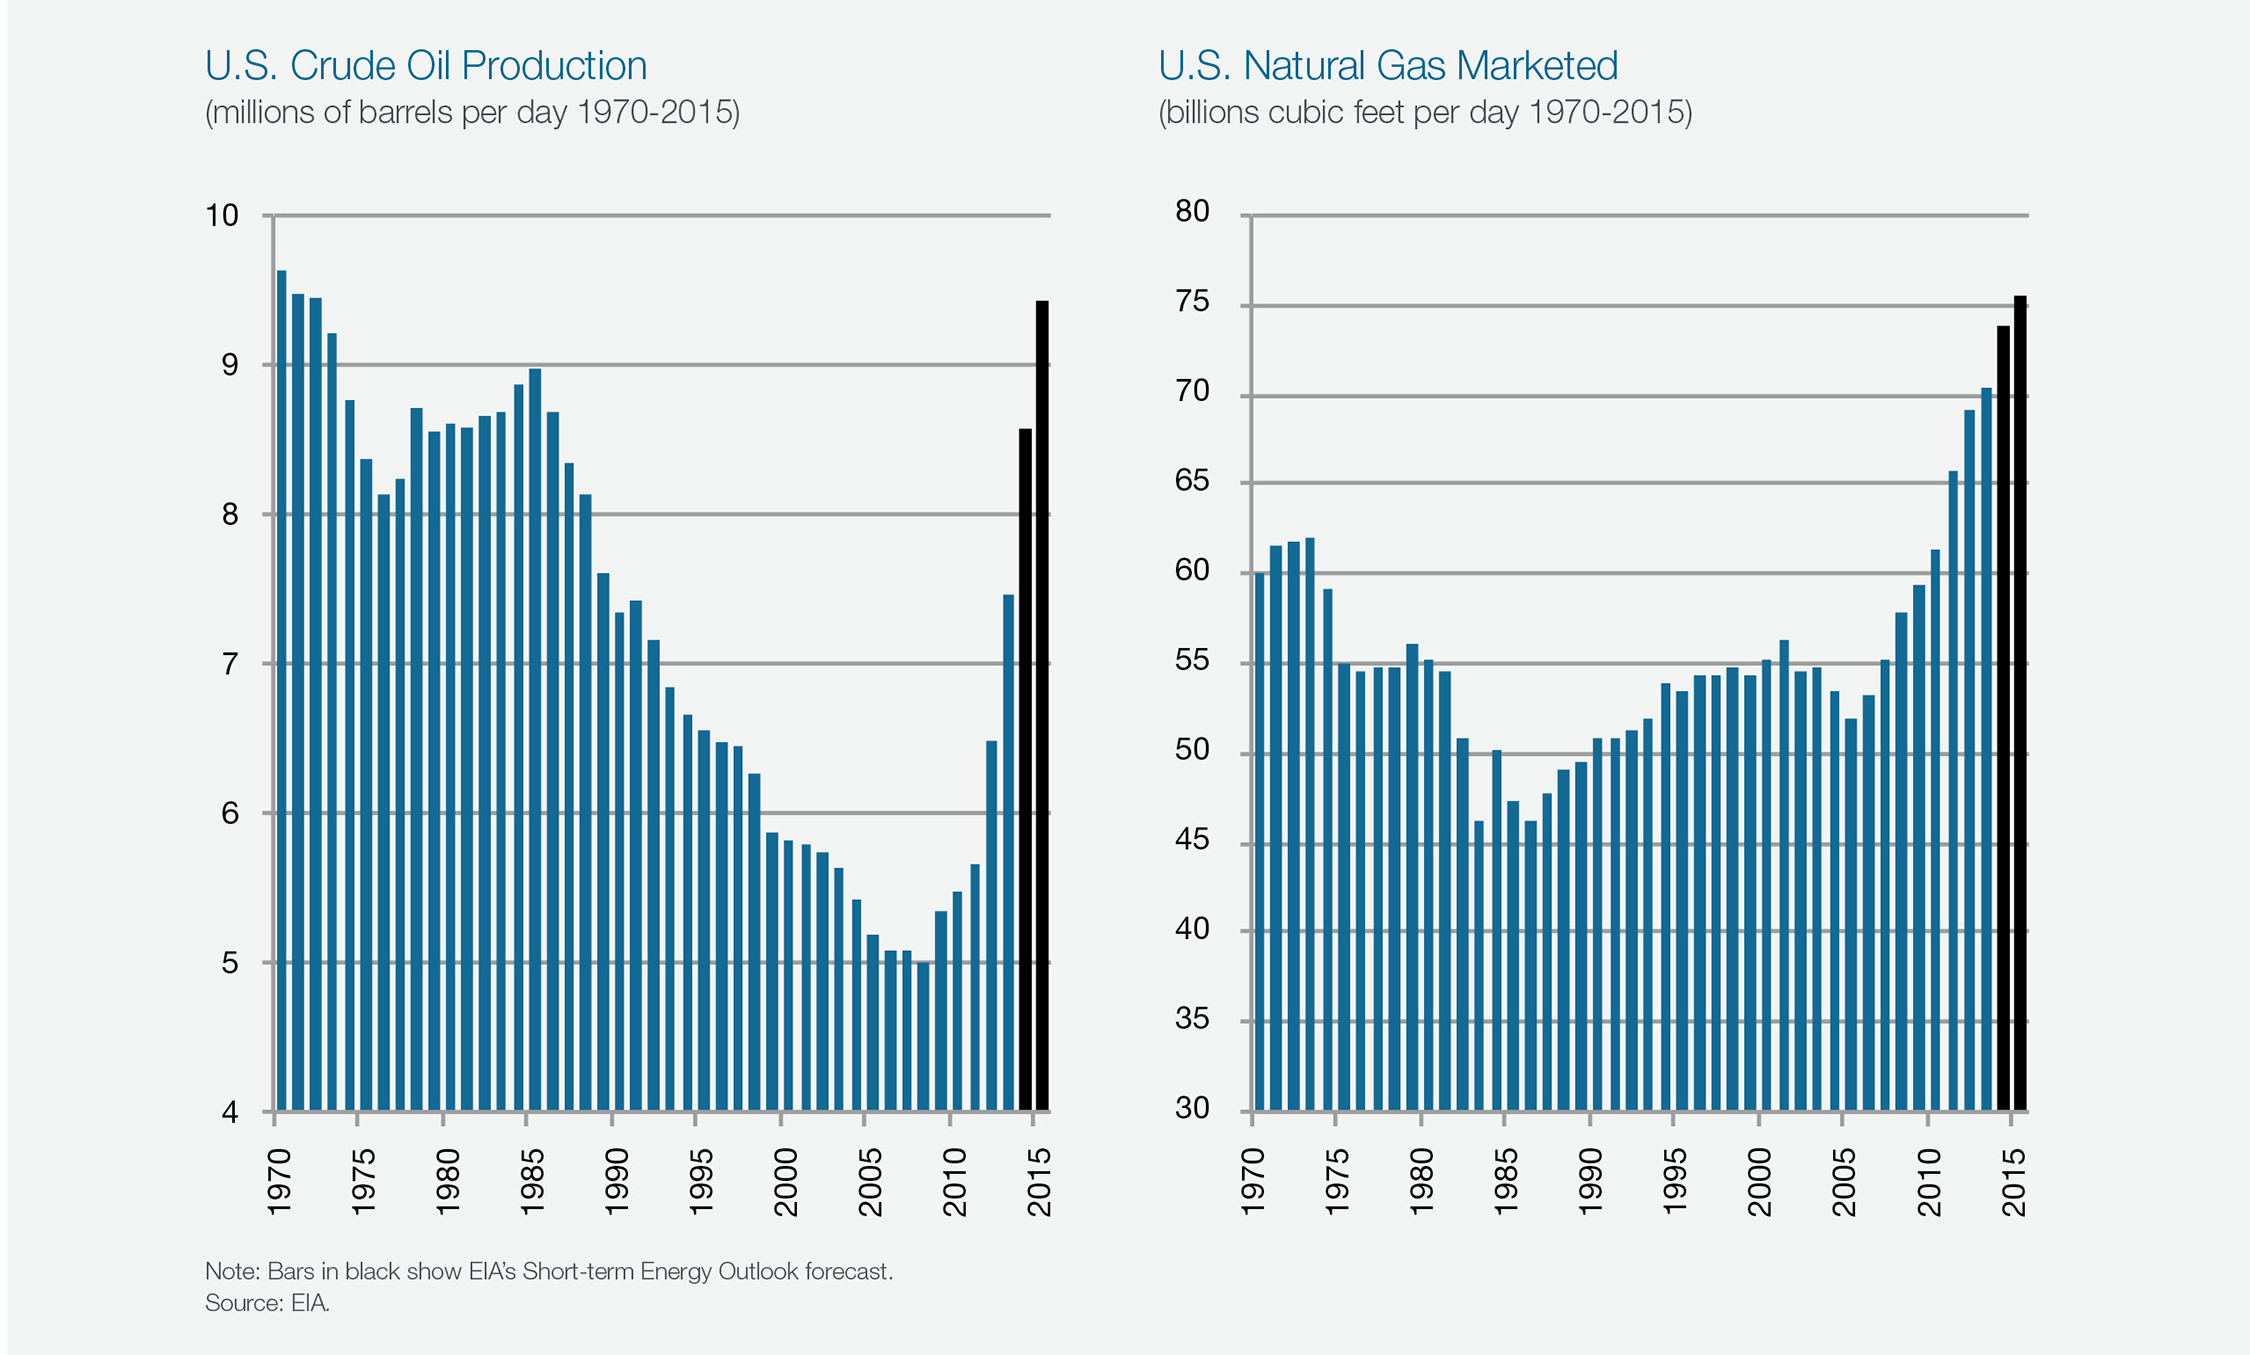 US Crude Oil & Natural Gas Production 1970-2015